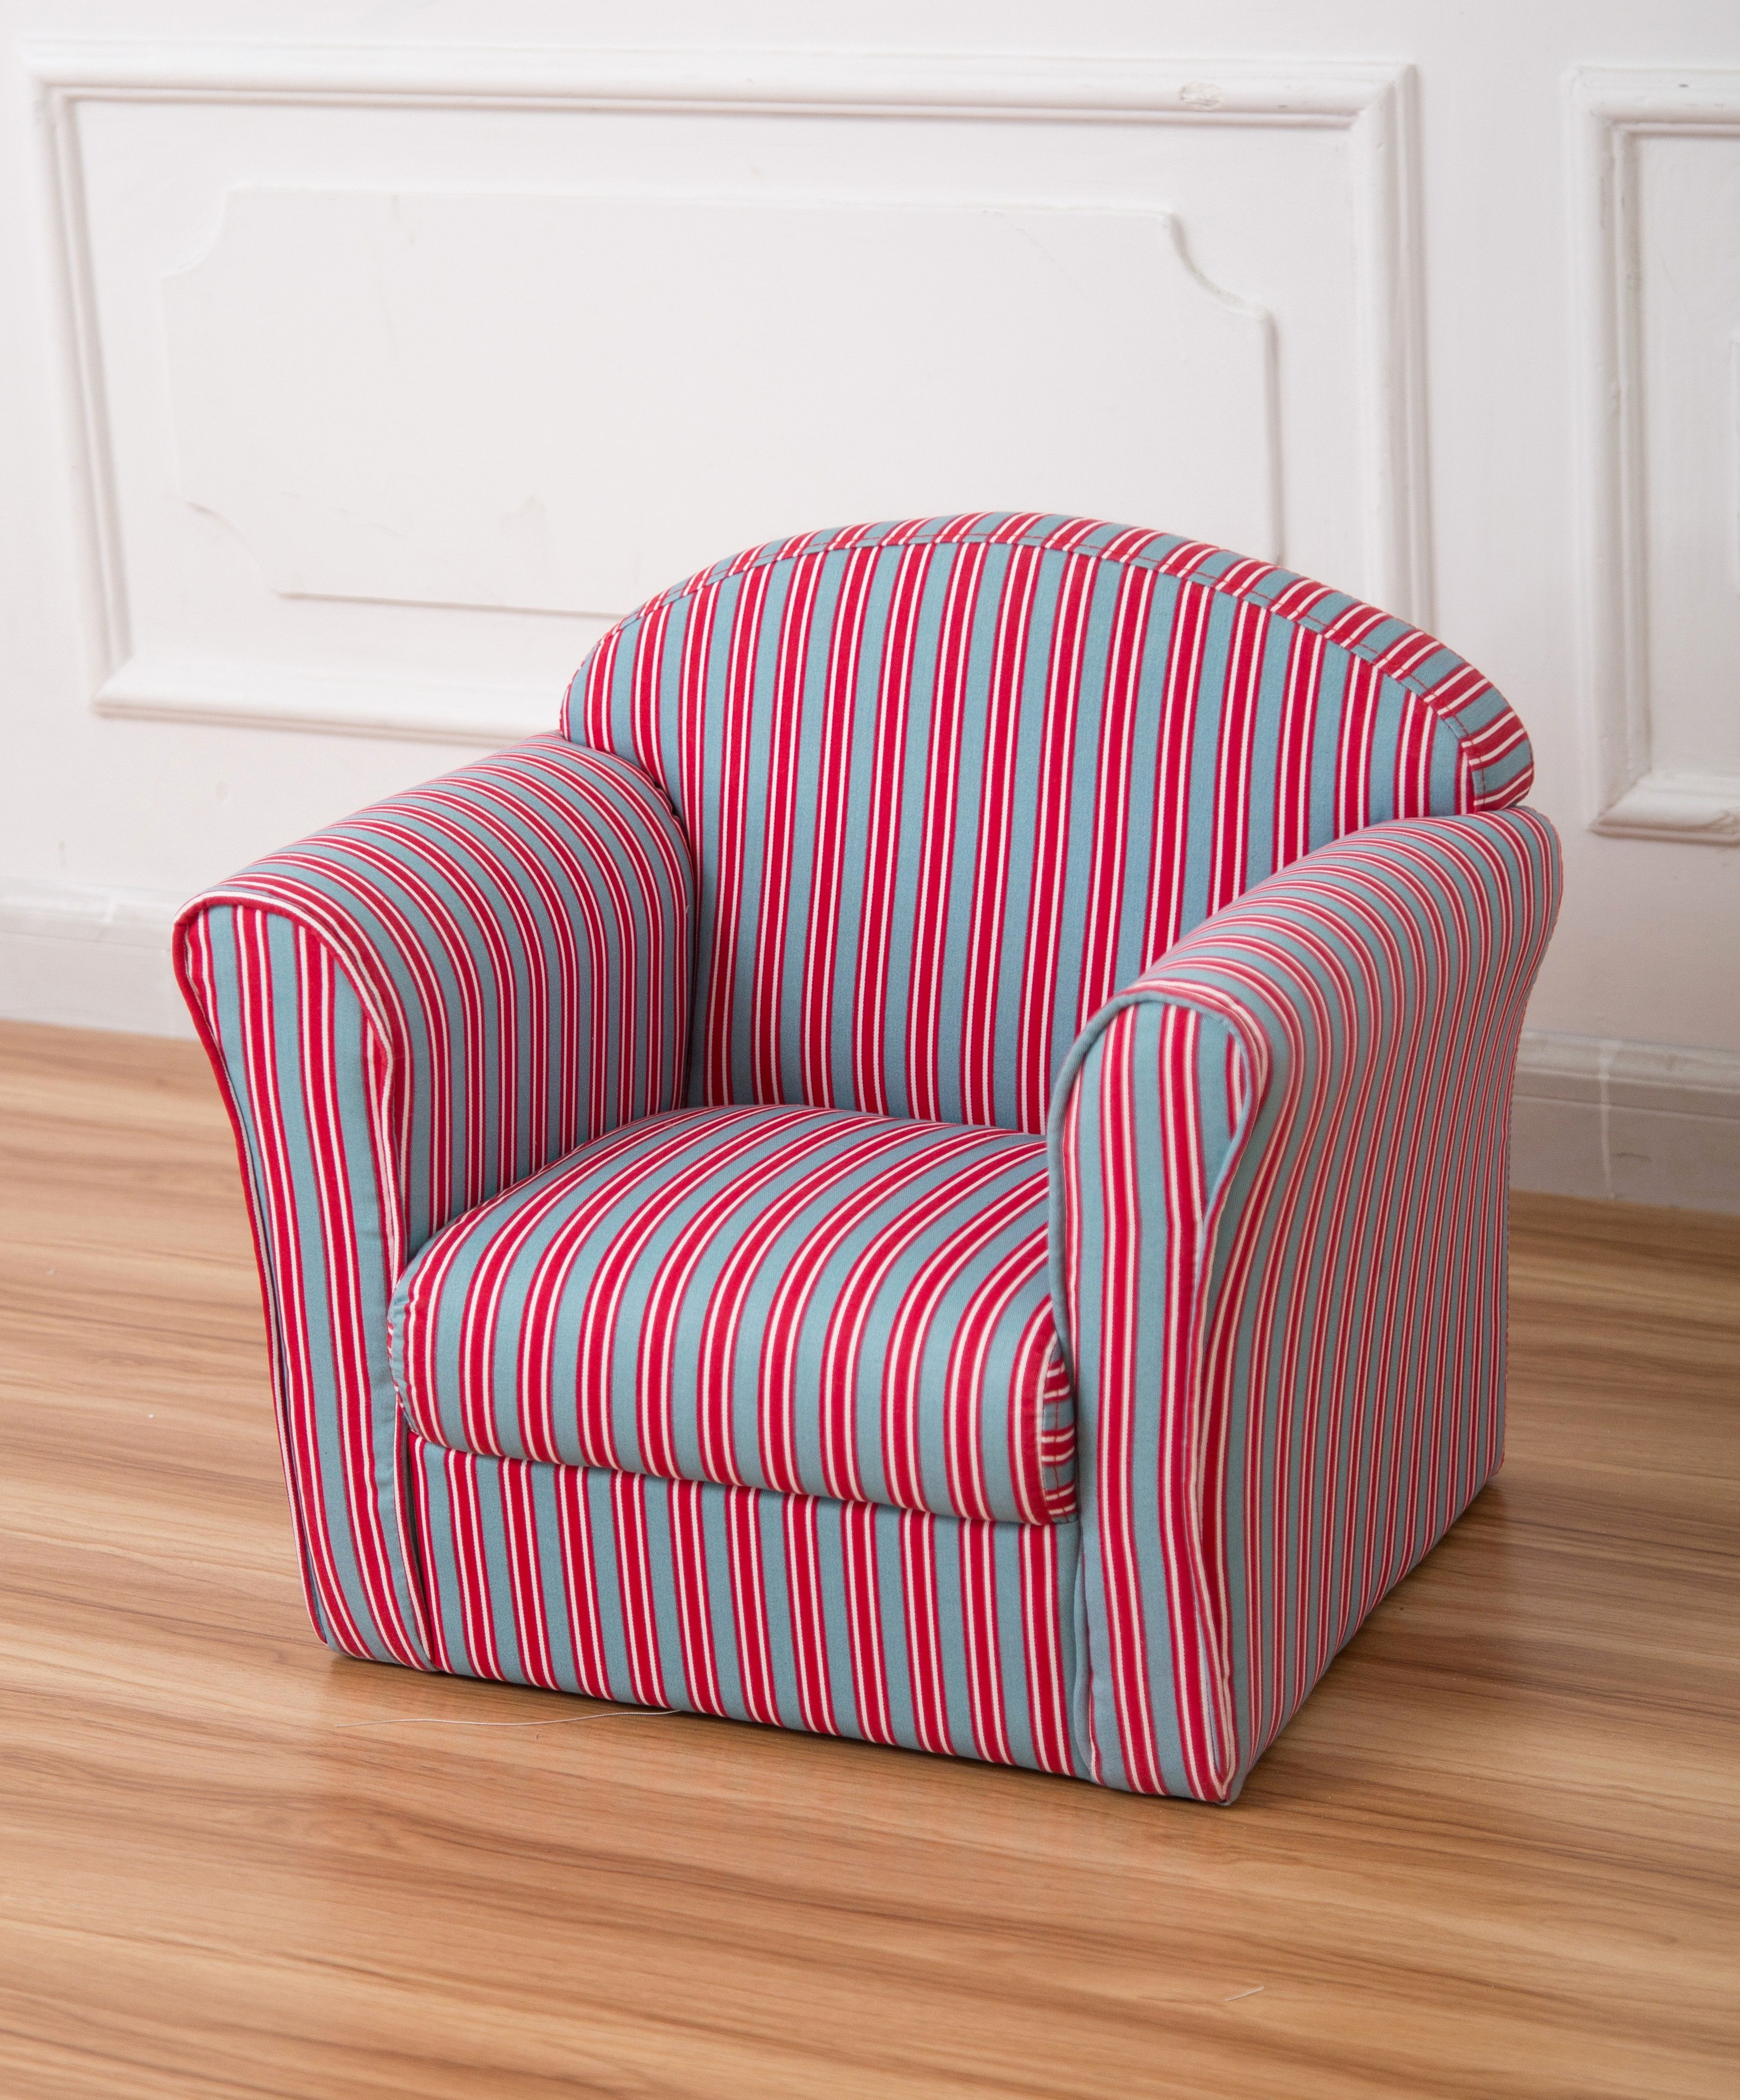 Upholstered Children's Chairs Kids Children S Chair Armchair Sofa Seat Fabric Upholstered